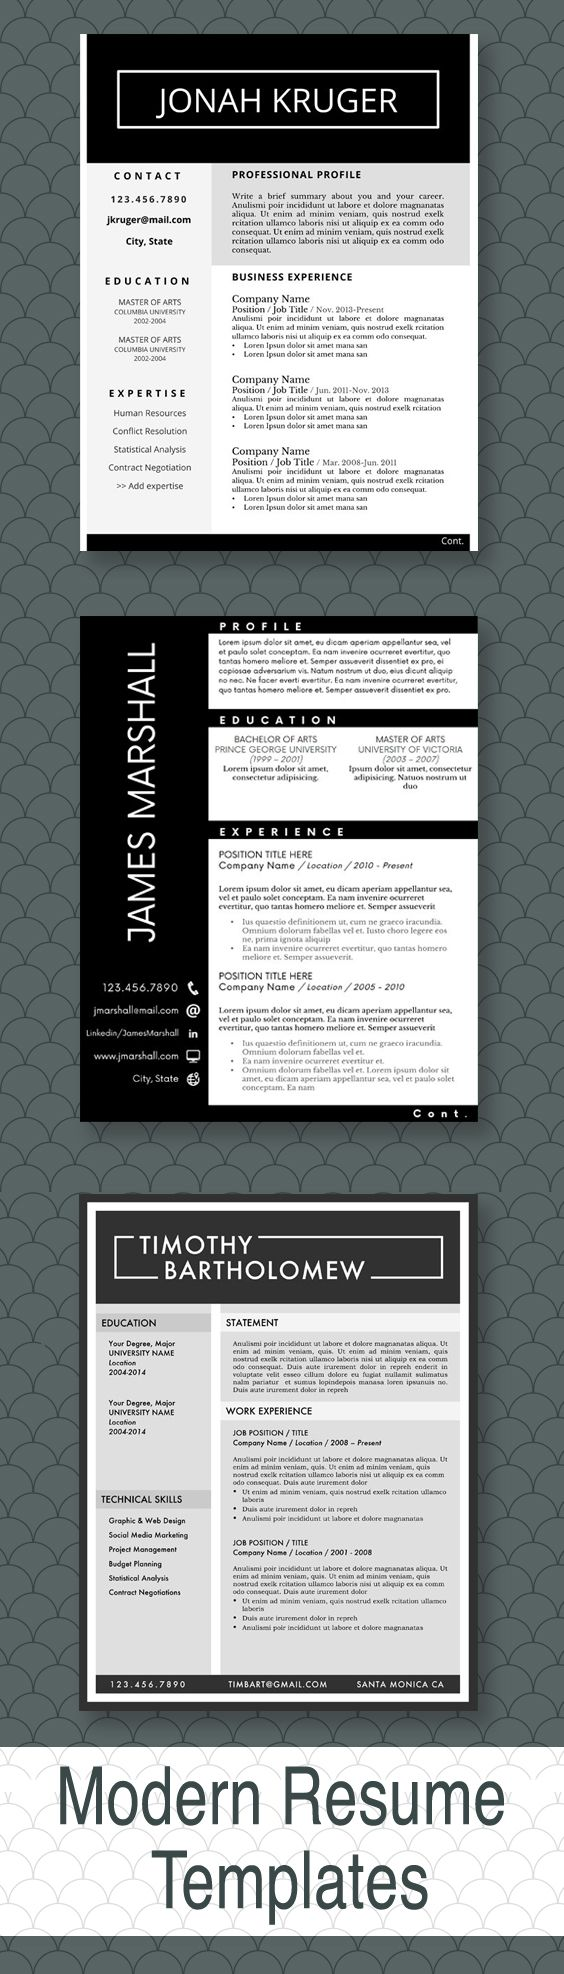 accomplishments in resume%0A Love these resumes  totally eyecatching